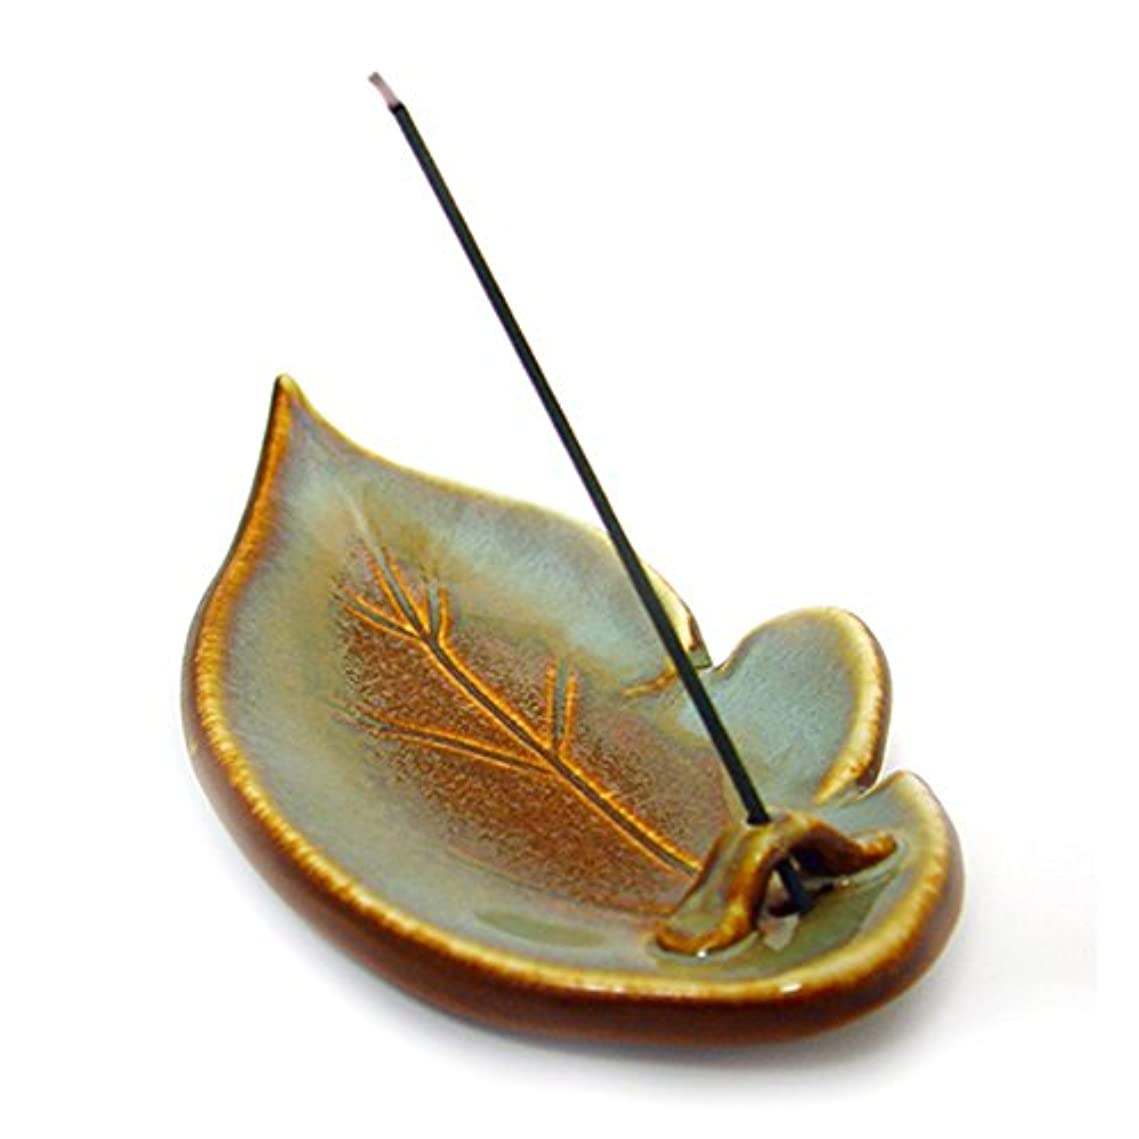 仕立て屋フルーツ兵隊Shoyeido's Desert Sage Ceramic Leaf Incense Holder by SHOYEIDO [並行輸入品]